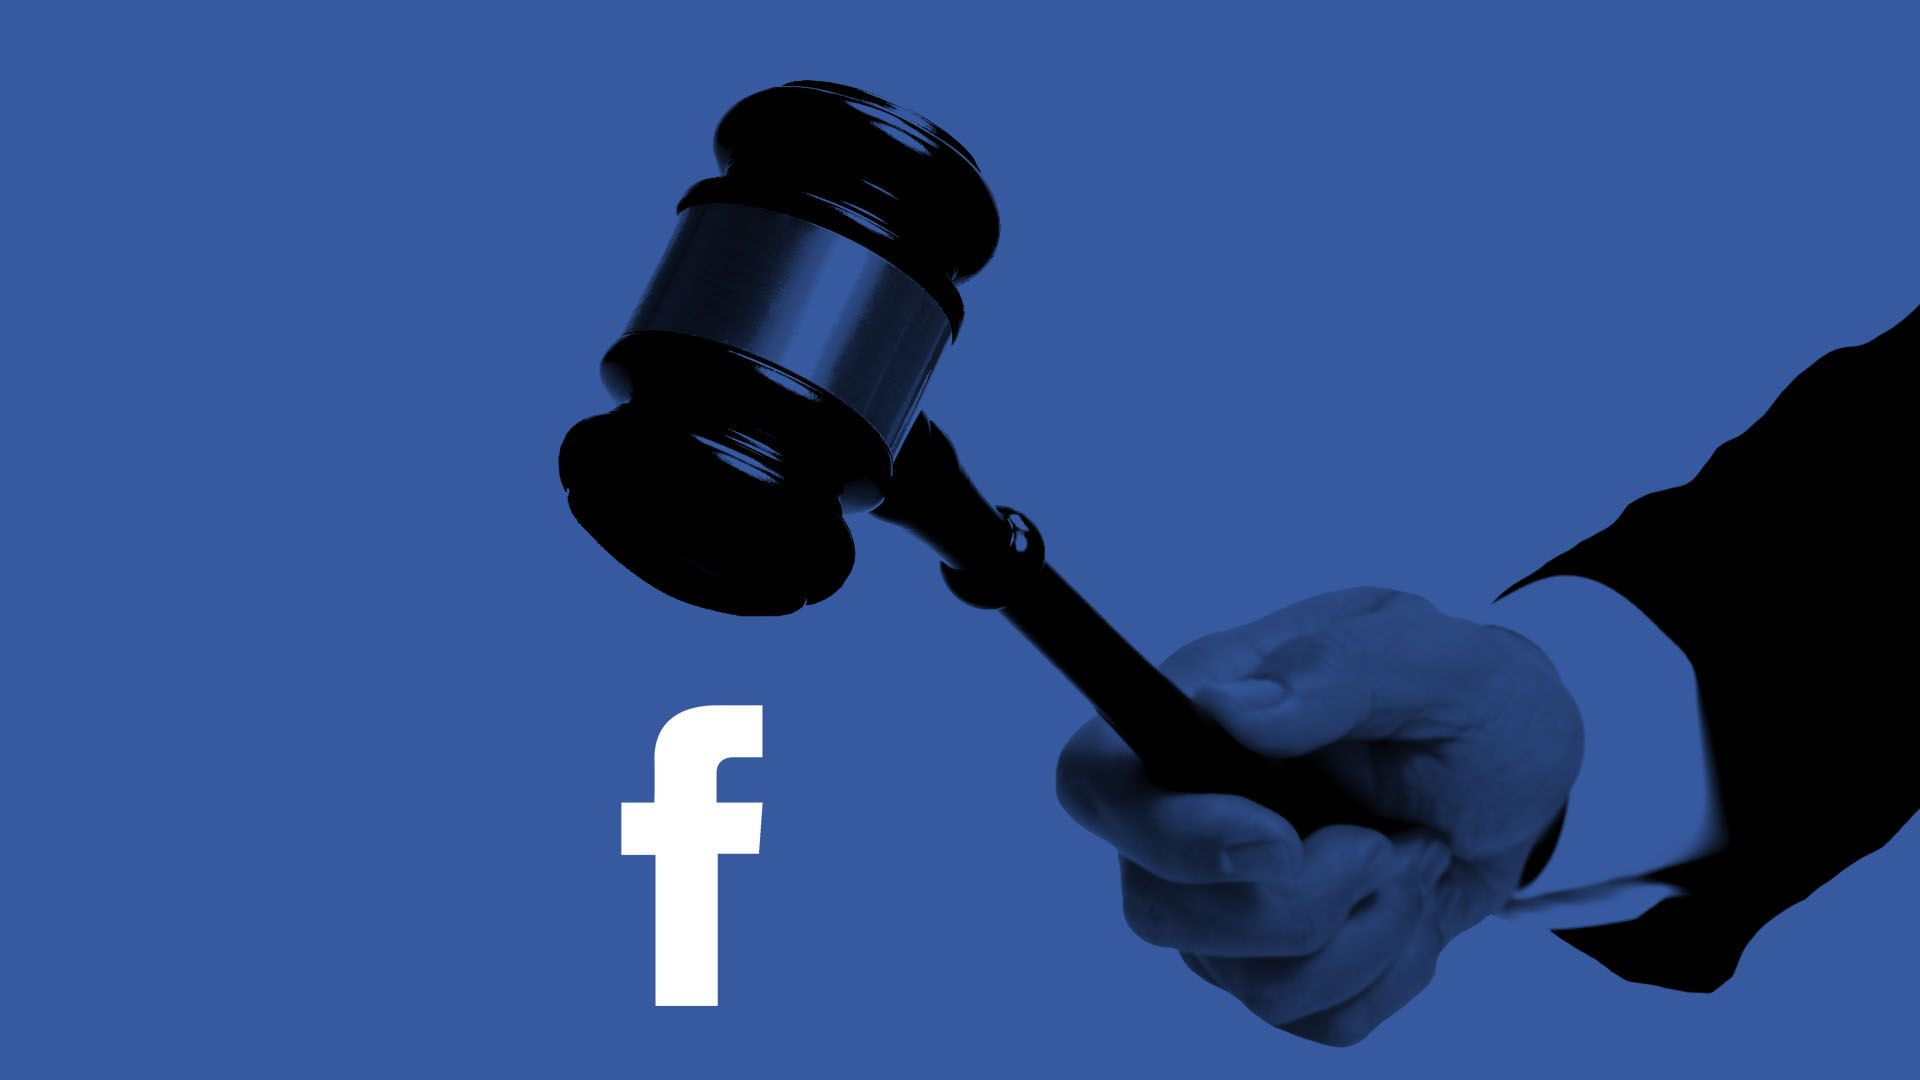 Featured image for Facebook has Suspended 69,000 Apps Amid Ongoing Privacy investigation